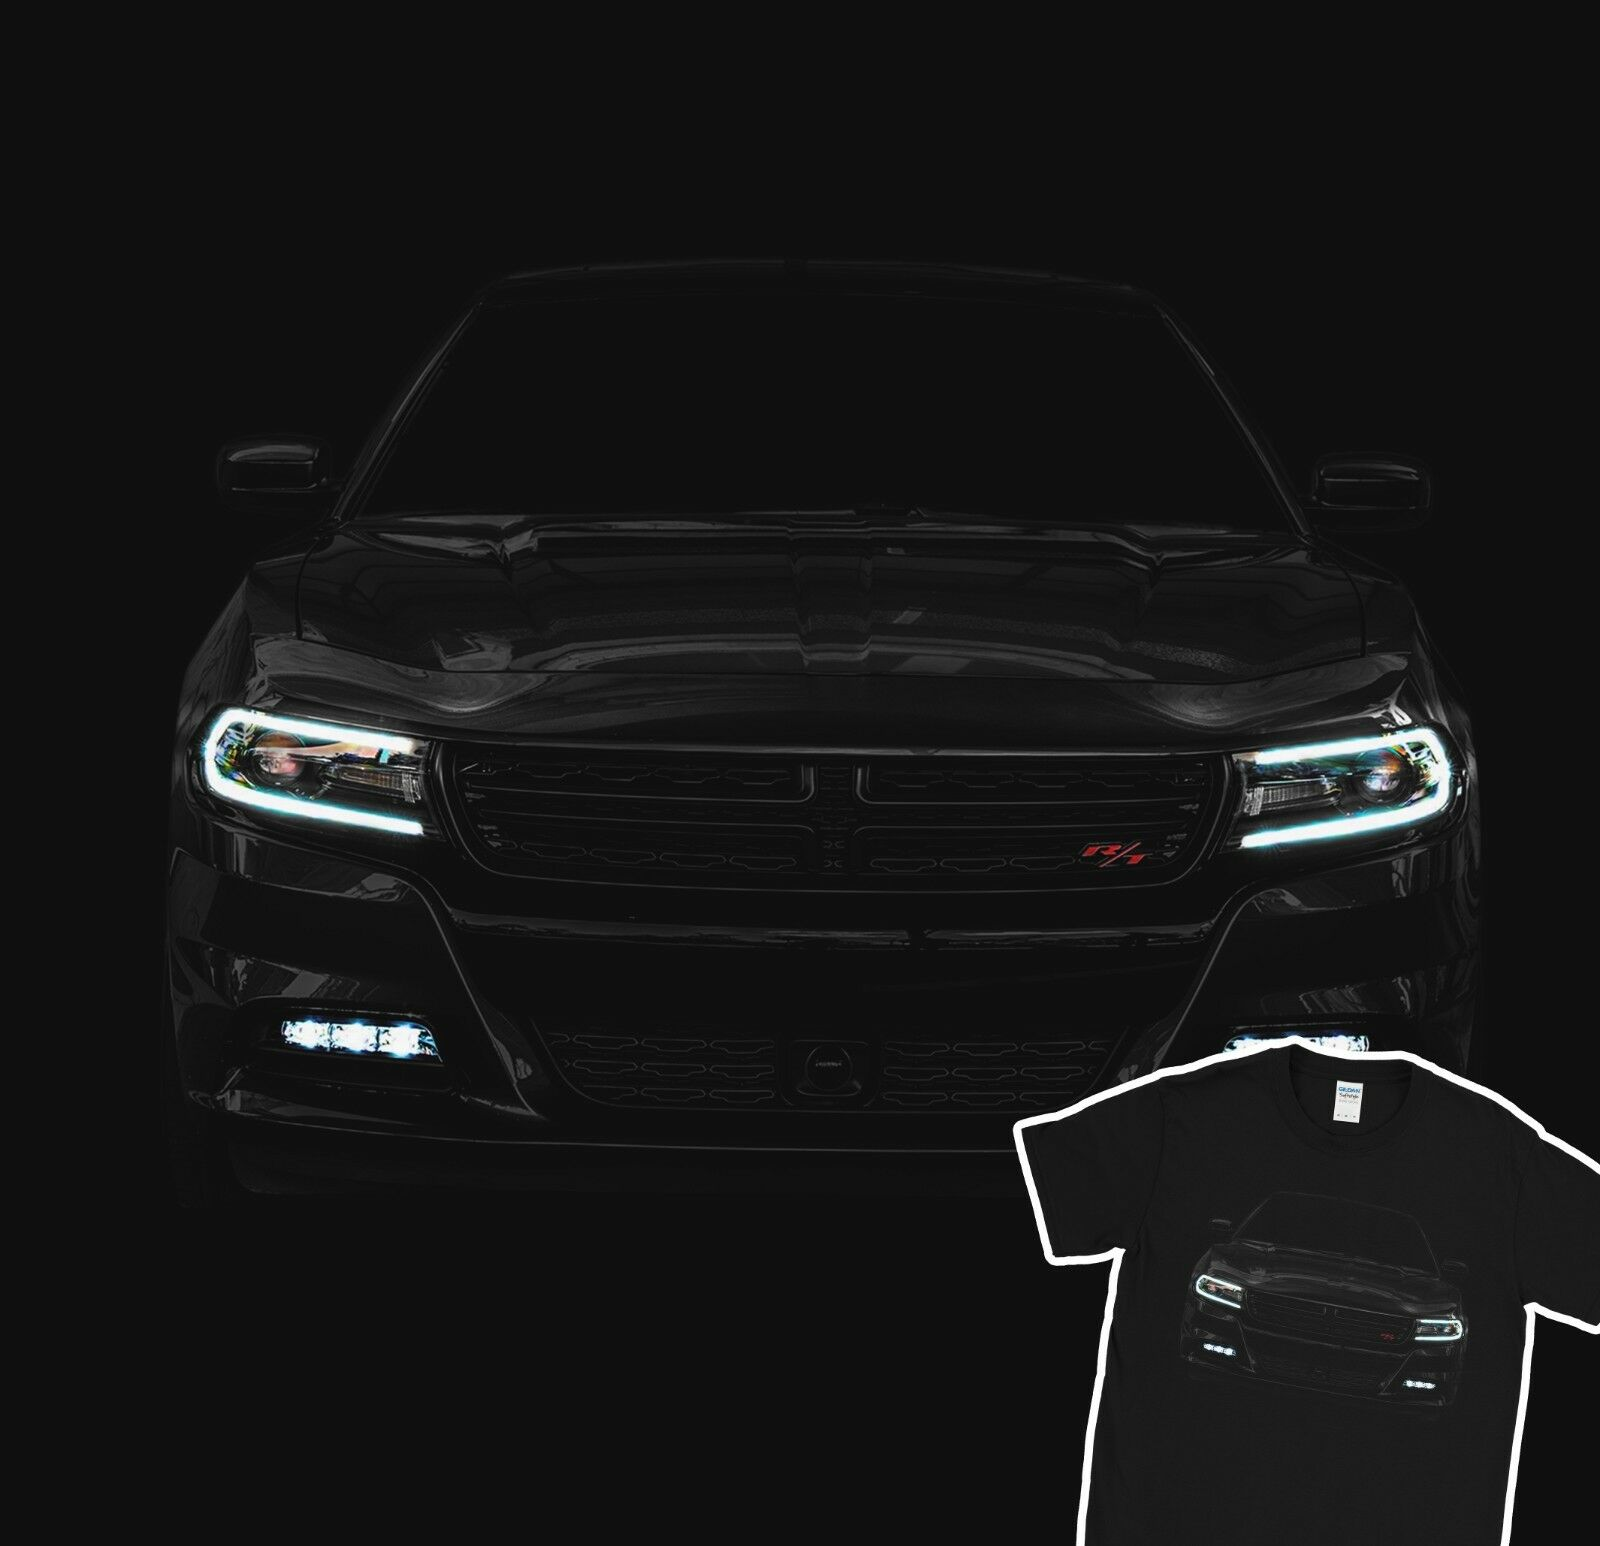 2016 Car Charger R/T T-Shirt 100% Cotton Holiday Gift Christmas Birthday Men 2019 New Summer Short Sleeve Cotton Print T Shirts image